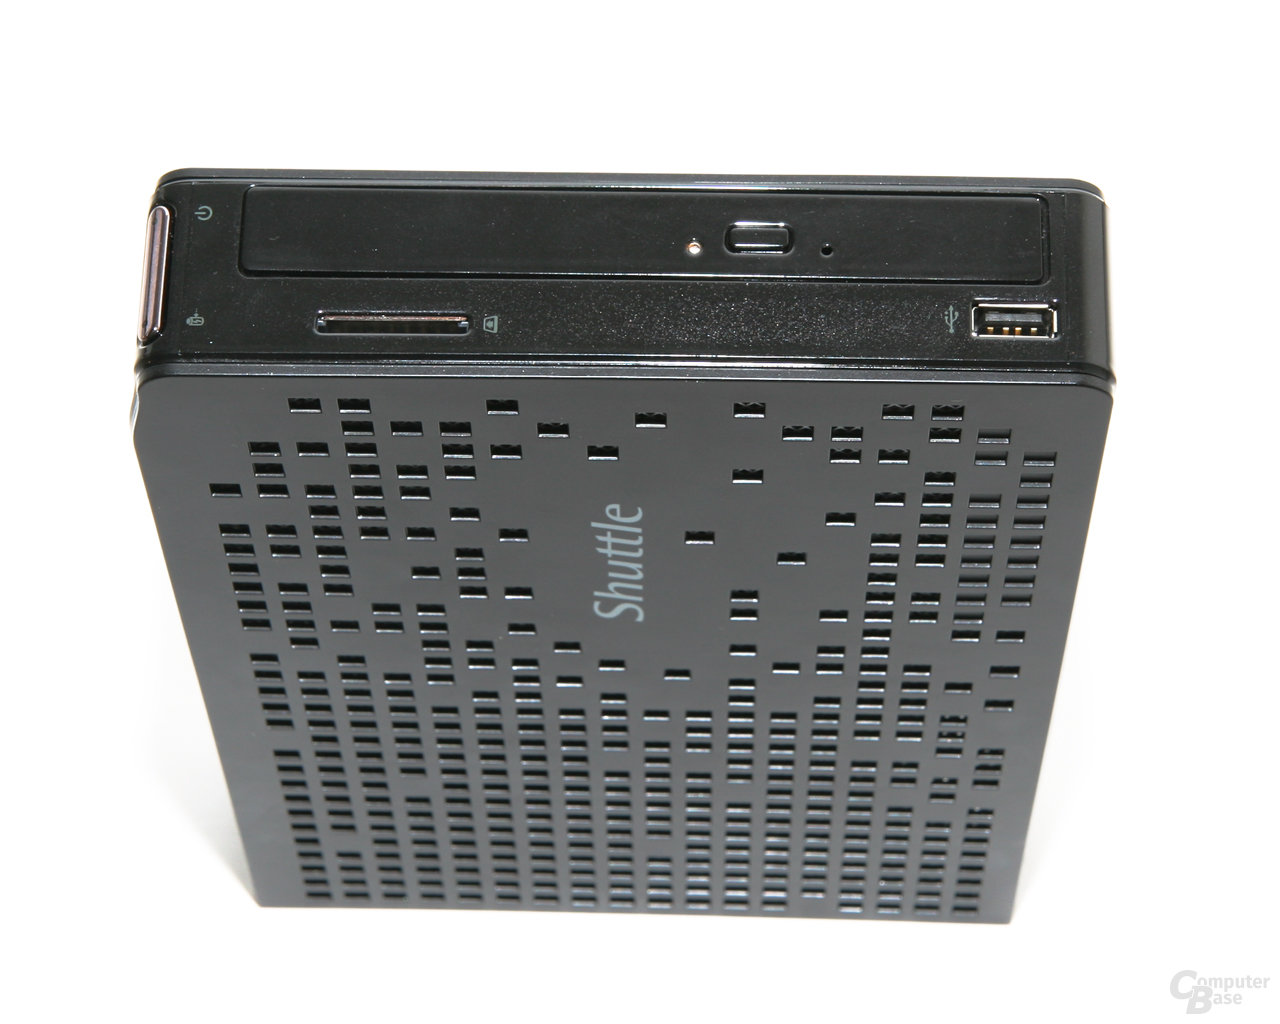 Shuttle XS 3510MA – Front